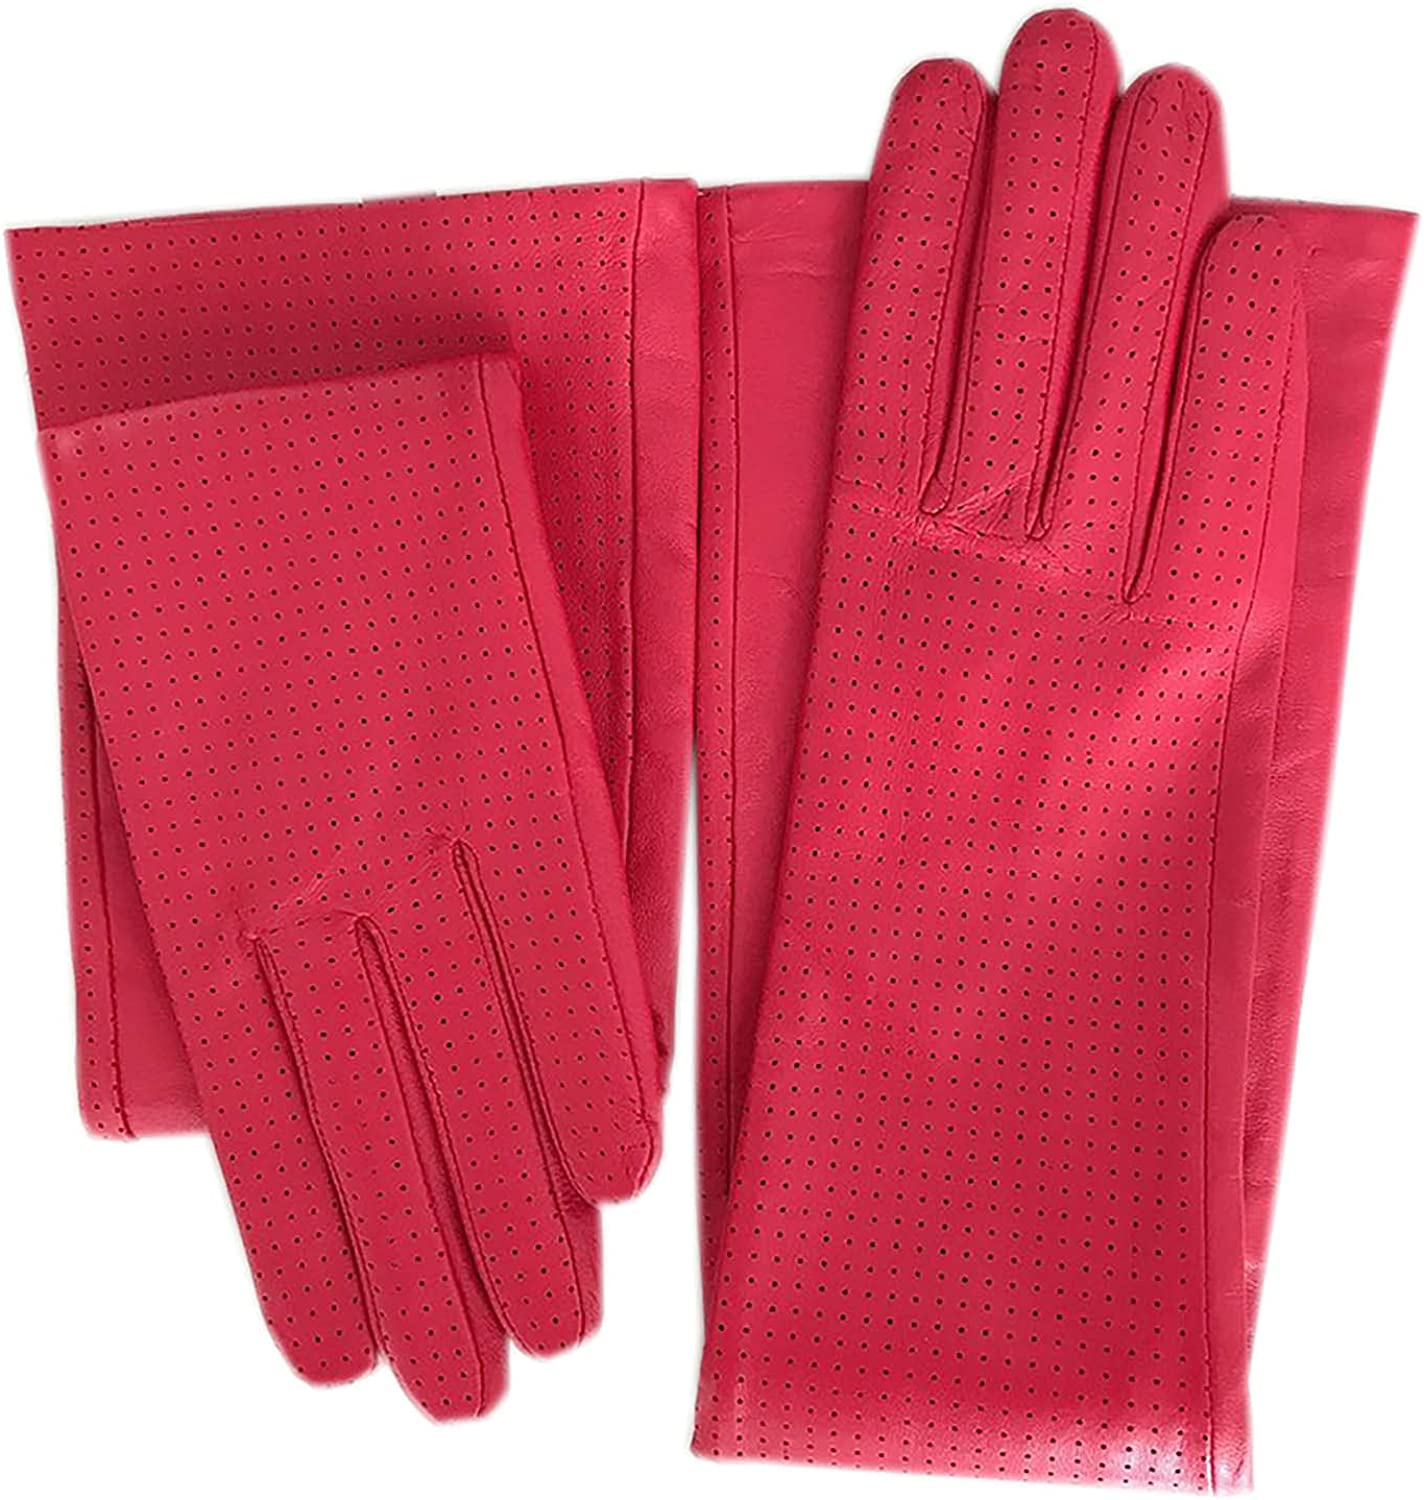 Winter ladies fashion elbow sheepskin long gloves new red punched leather